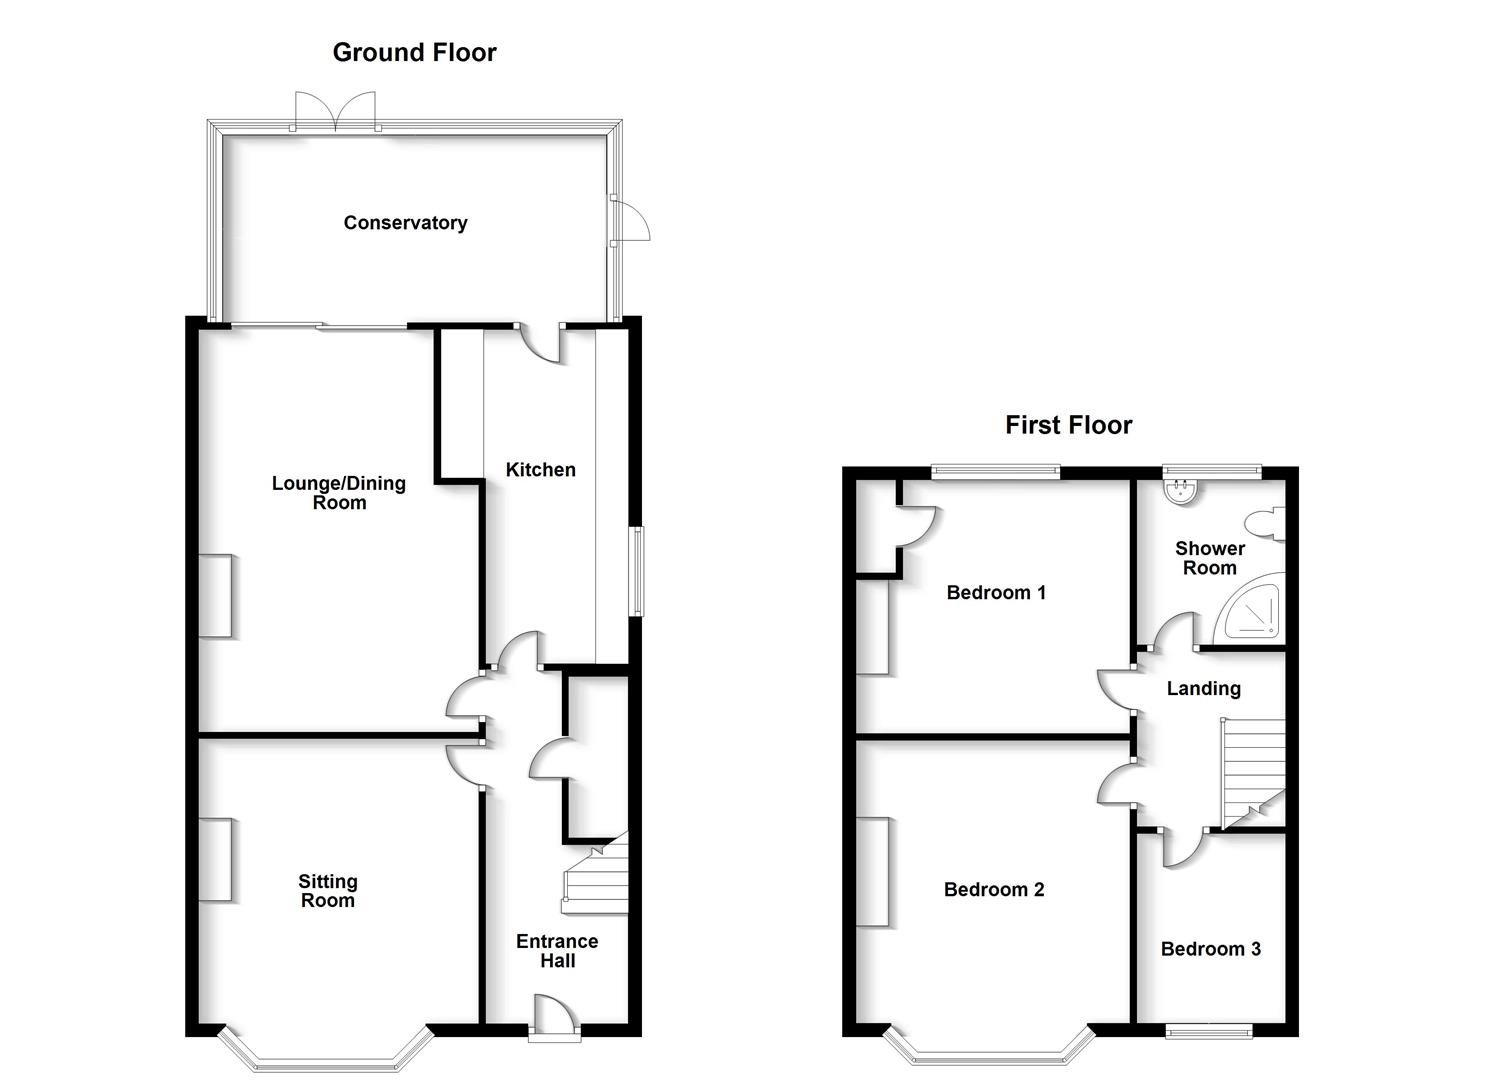 Floorplans For Percival Road, Rugby